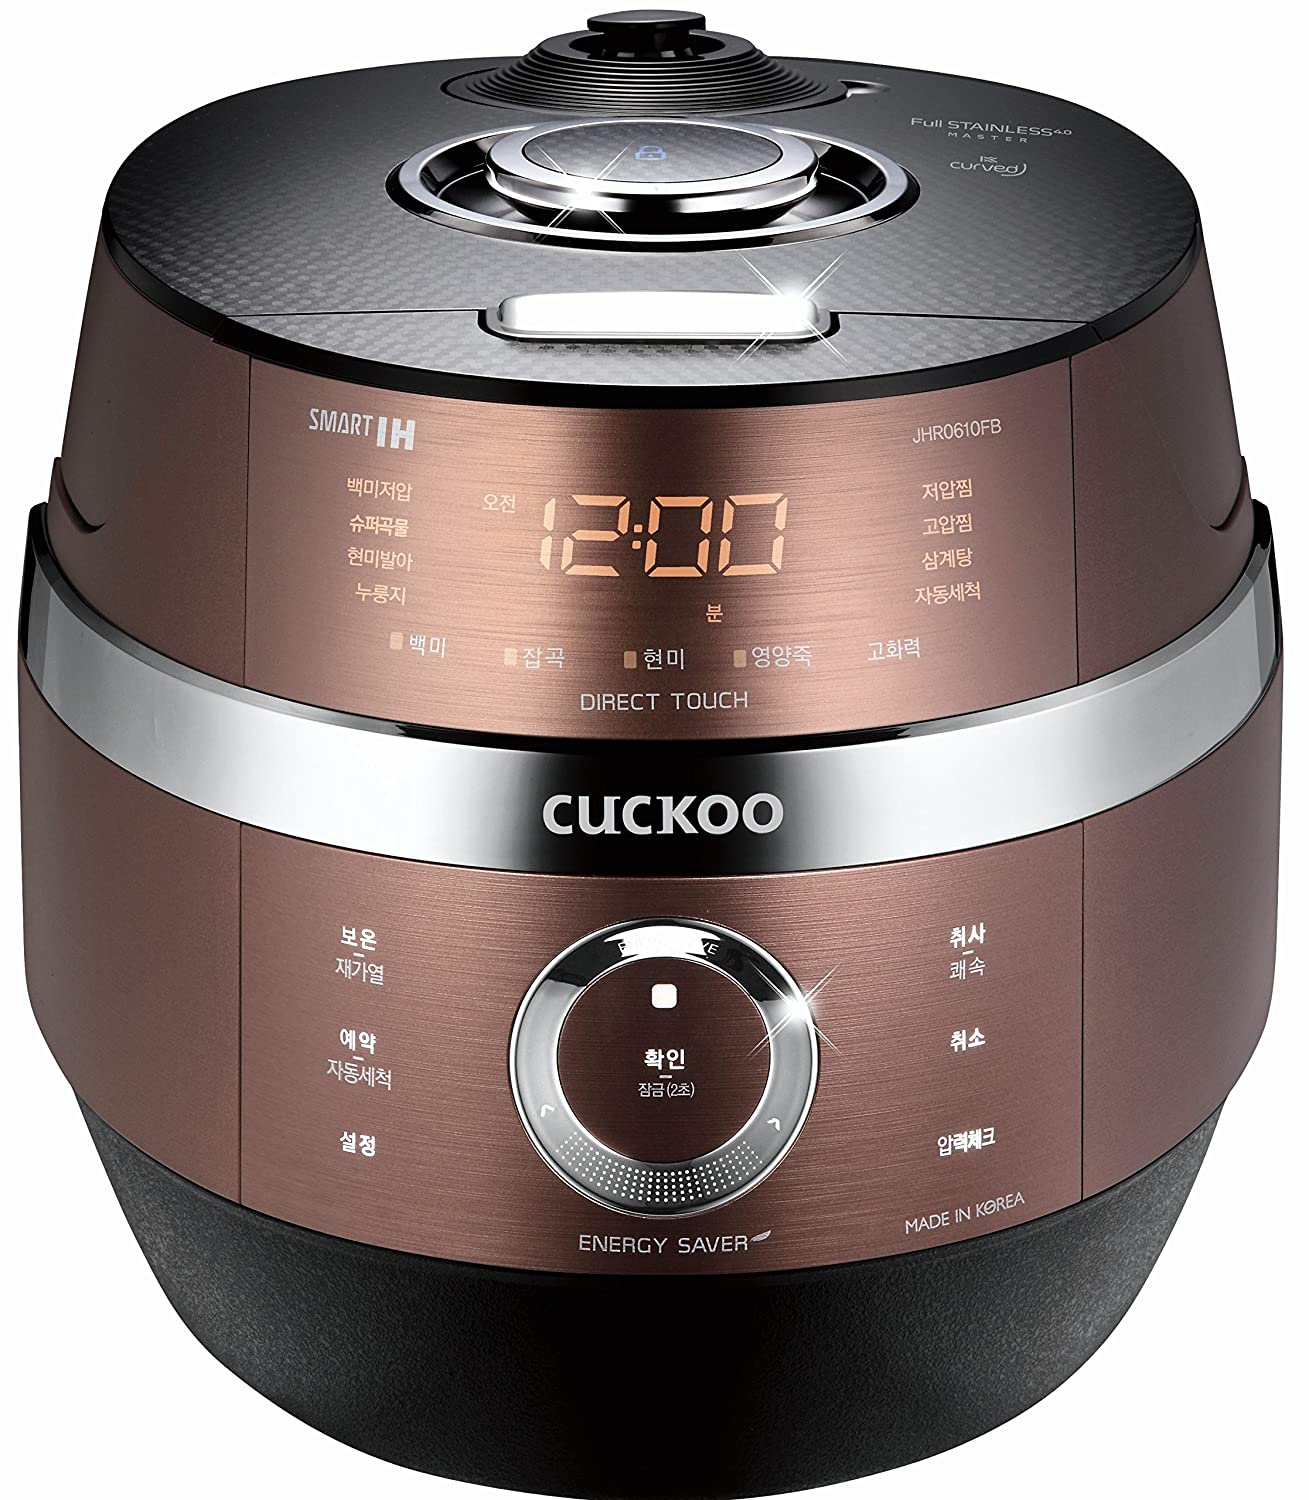 CUCKOO CRP-JHSR0609F 6 Cup Stainless 4.0 Smart Induction Heating Pressure Electric Rice Cooker (6 Cups)